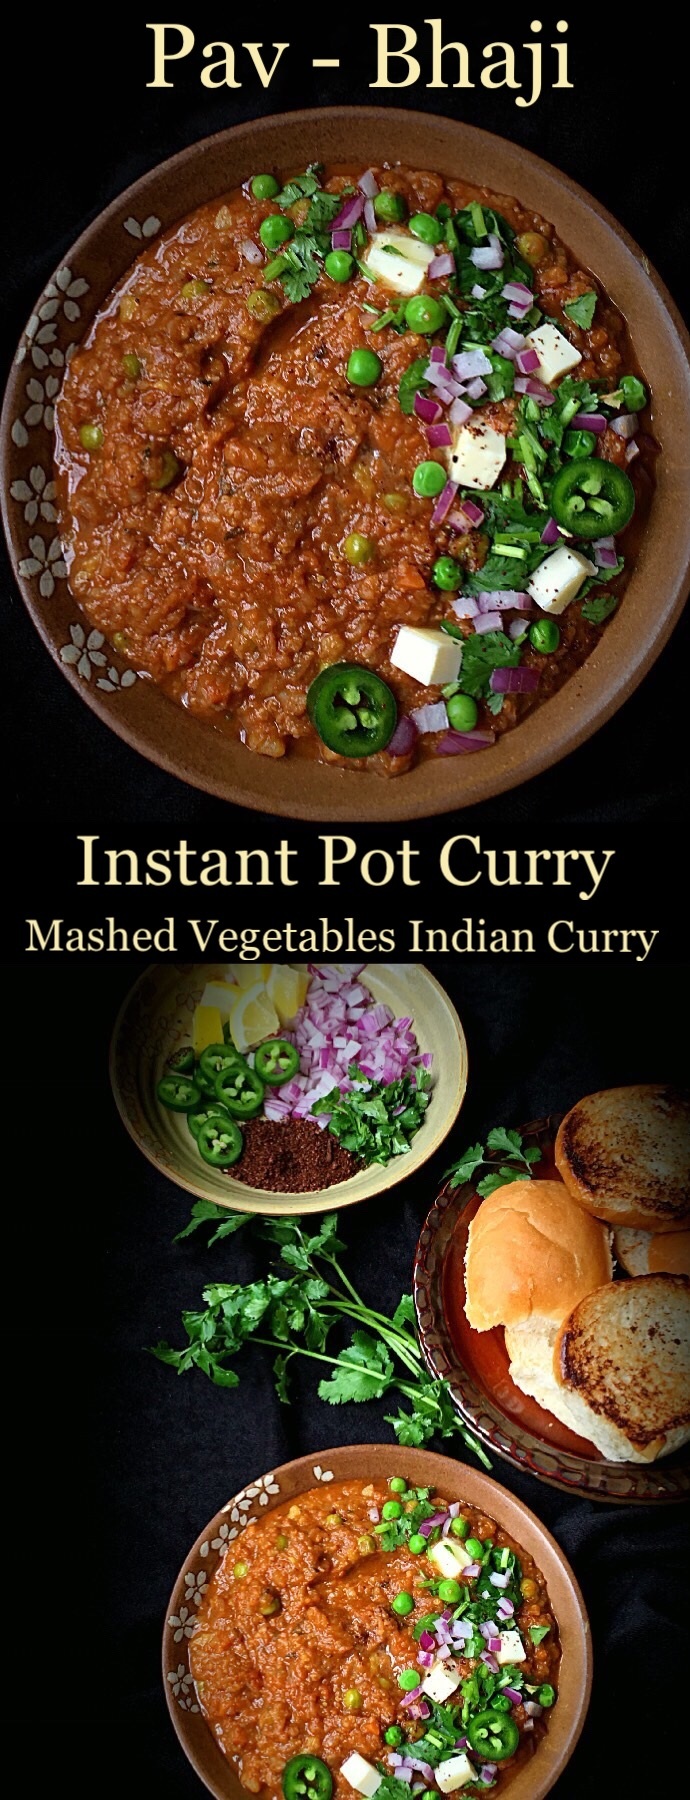 Instant Pot Pav Bhaji Recipe is the lip-smacking delicious street food from Mumbai, India. Potatoes cooked in spicy tomato Curry makes the BHAJI. To counter the heat, bhaji is served with butter grilled Pav or Dinner Rolls. The best part is that this recipe is made in INSTANT POT. The Stove Top instructions are also included. #pavbhaji #instantpotpavbhaji #instantpotvegetarianrecipes #instantpotindianrecipes #instantpotcurry